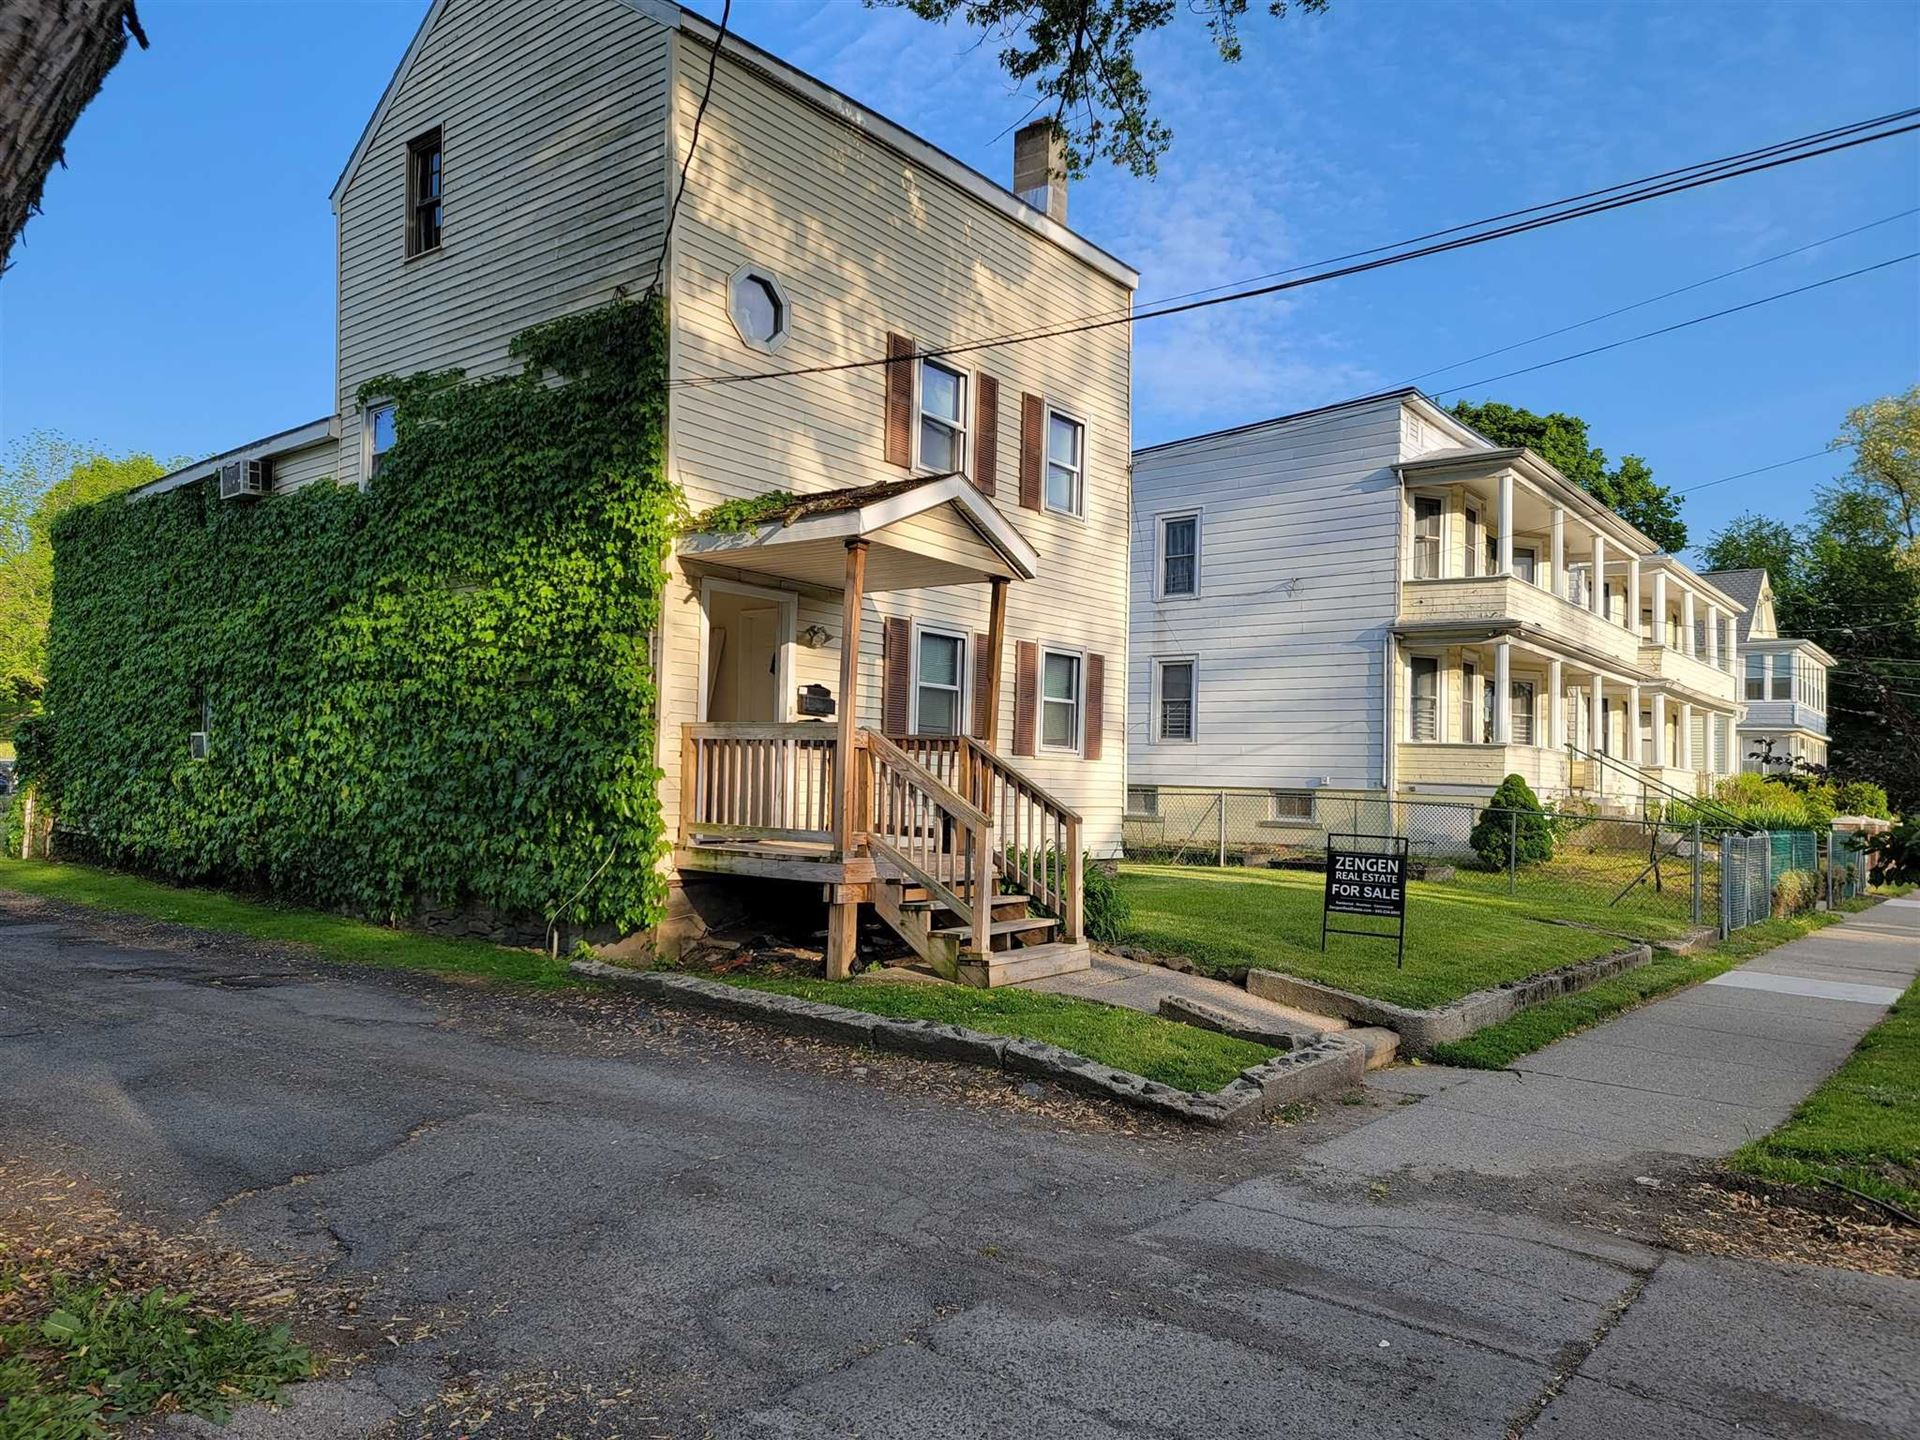 20 LINCOLN AVE., Poughkeepsie, NY 12601 - #: 399056